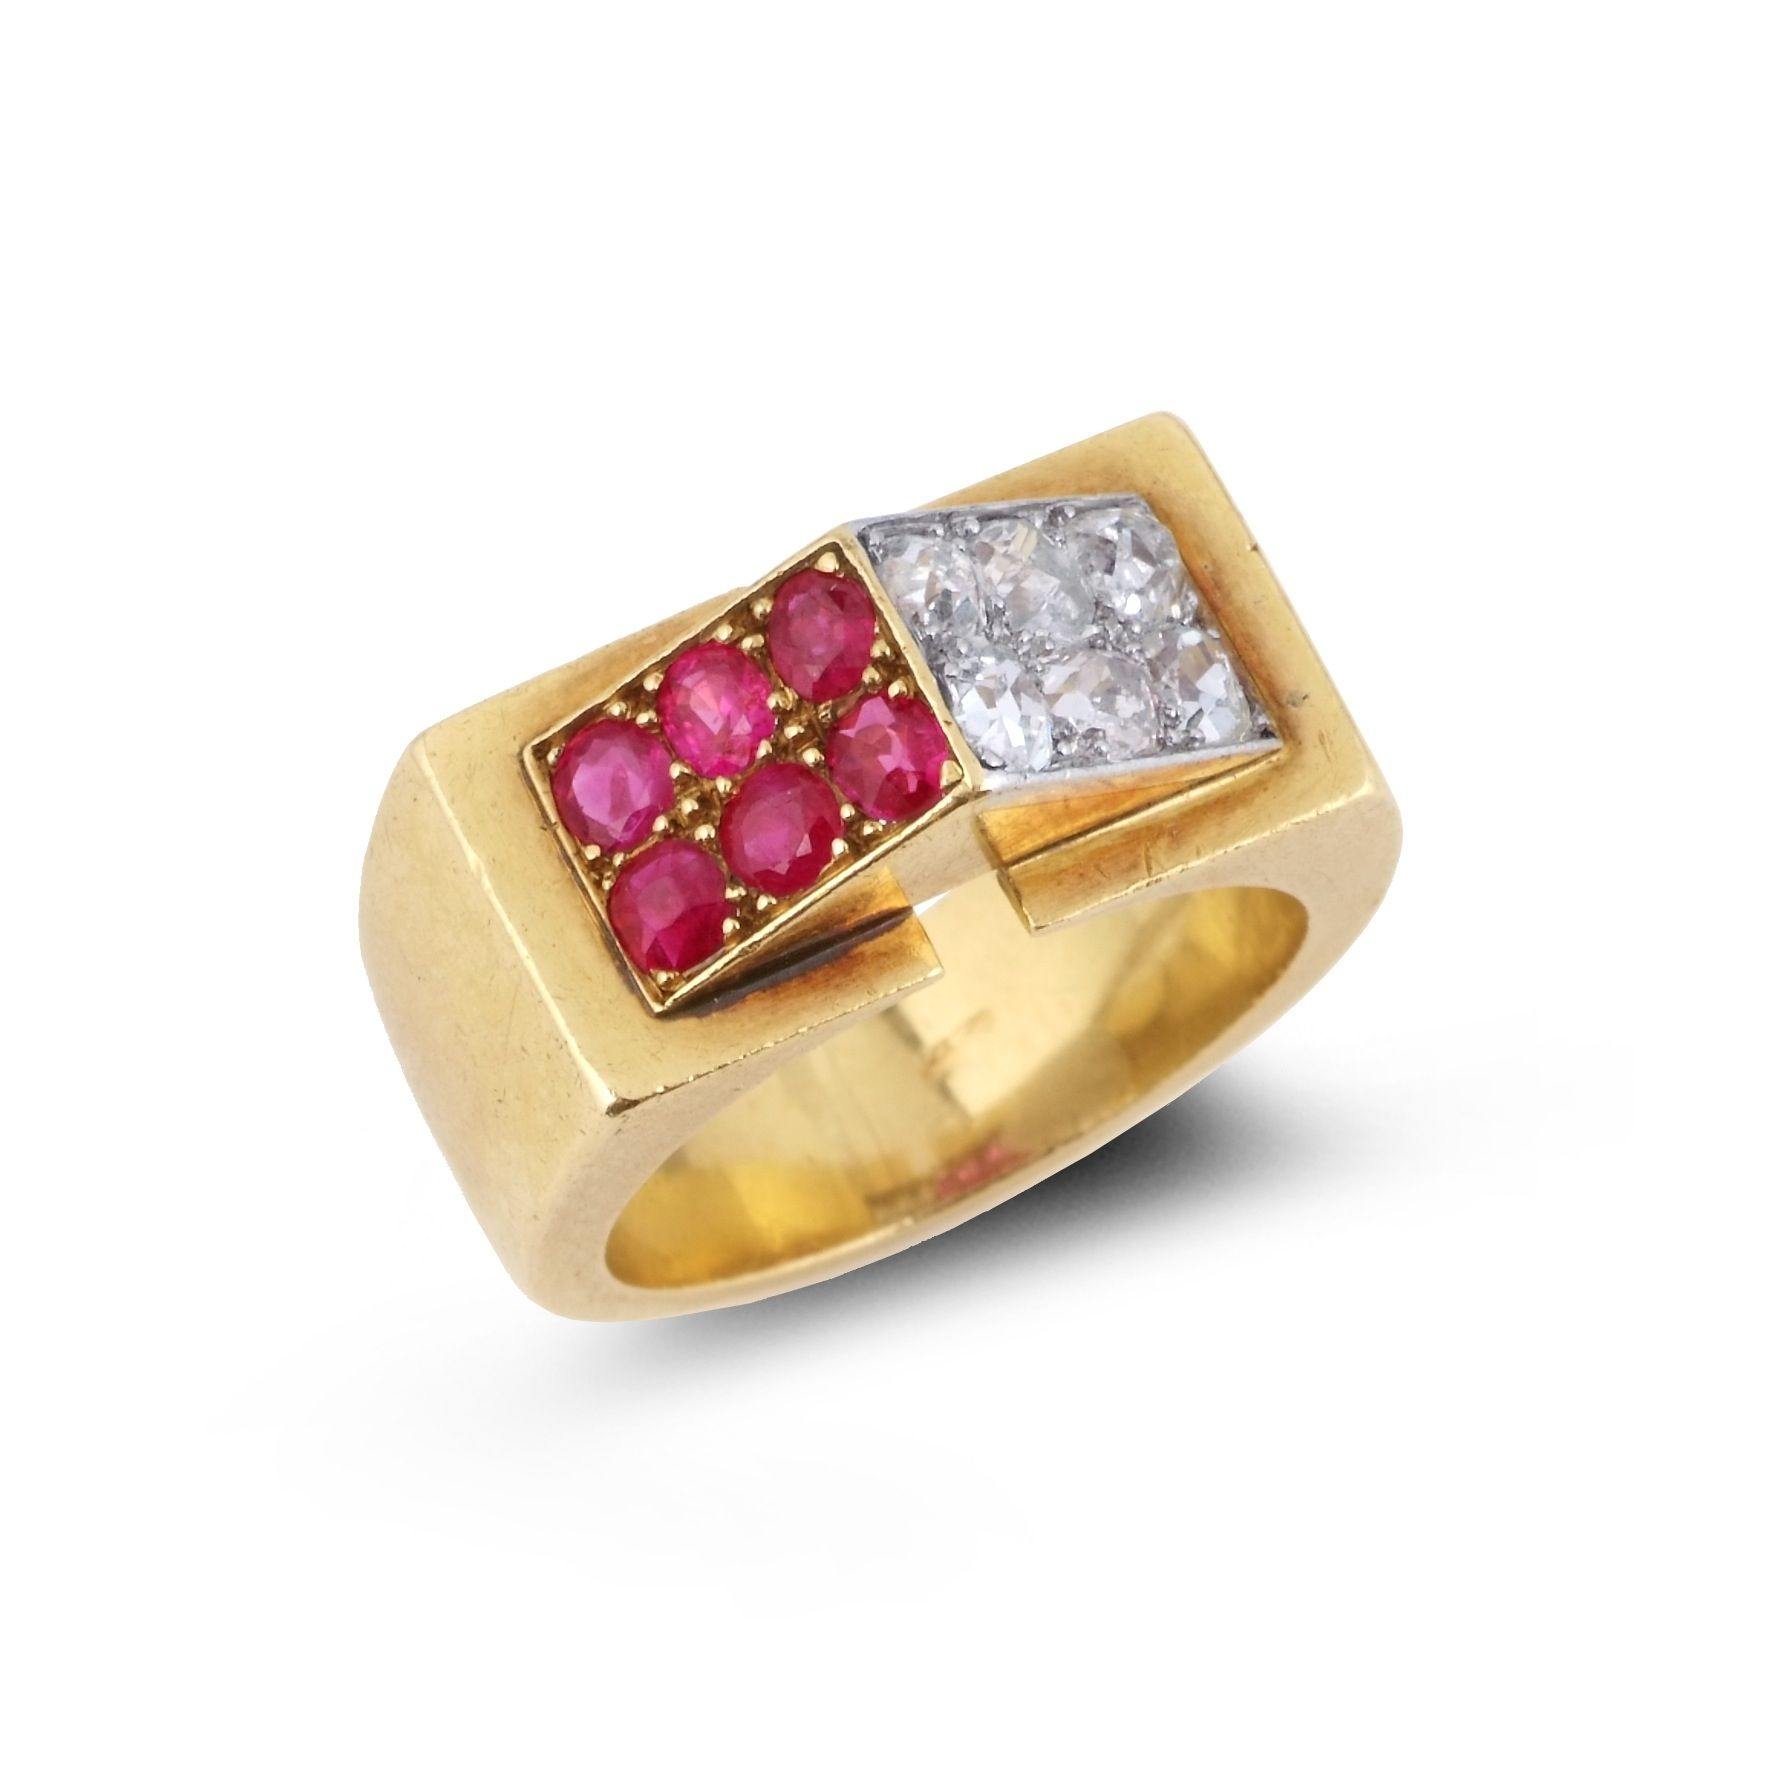 RENE BOIVIN. A ruby and diamond 'Toit' ring